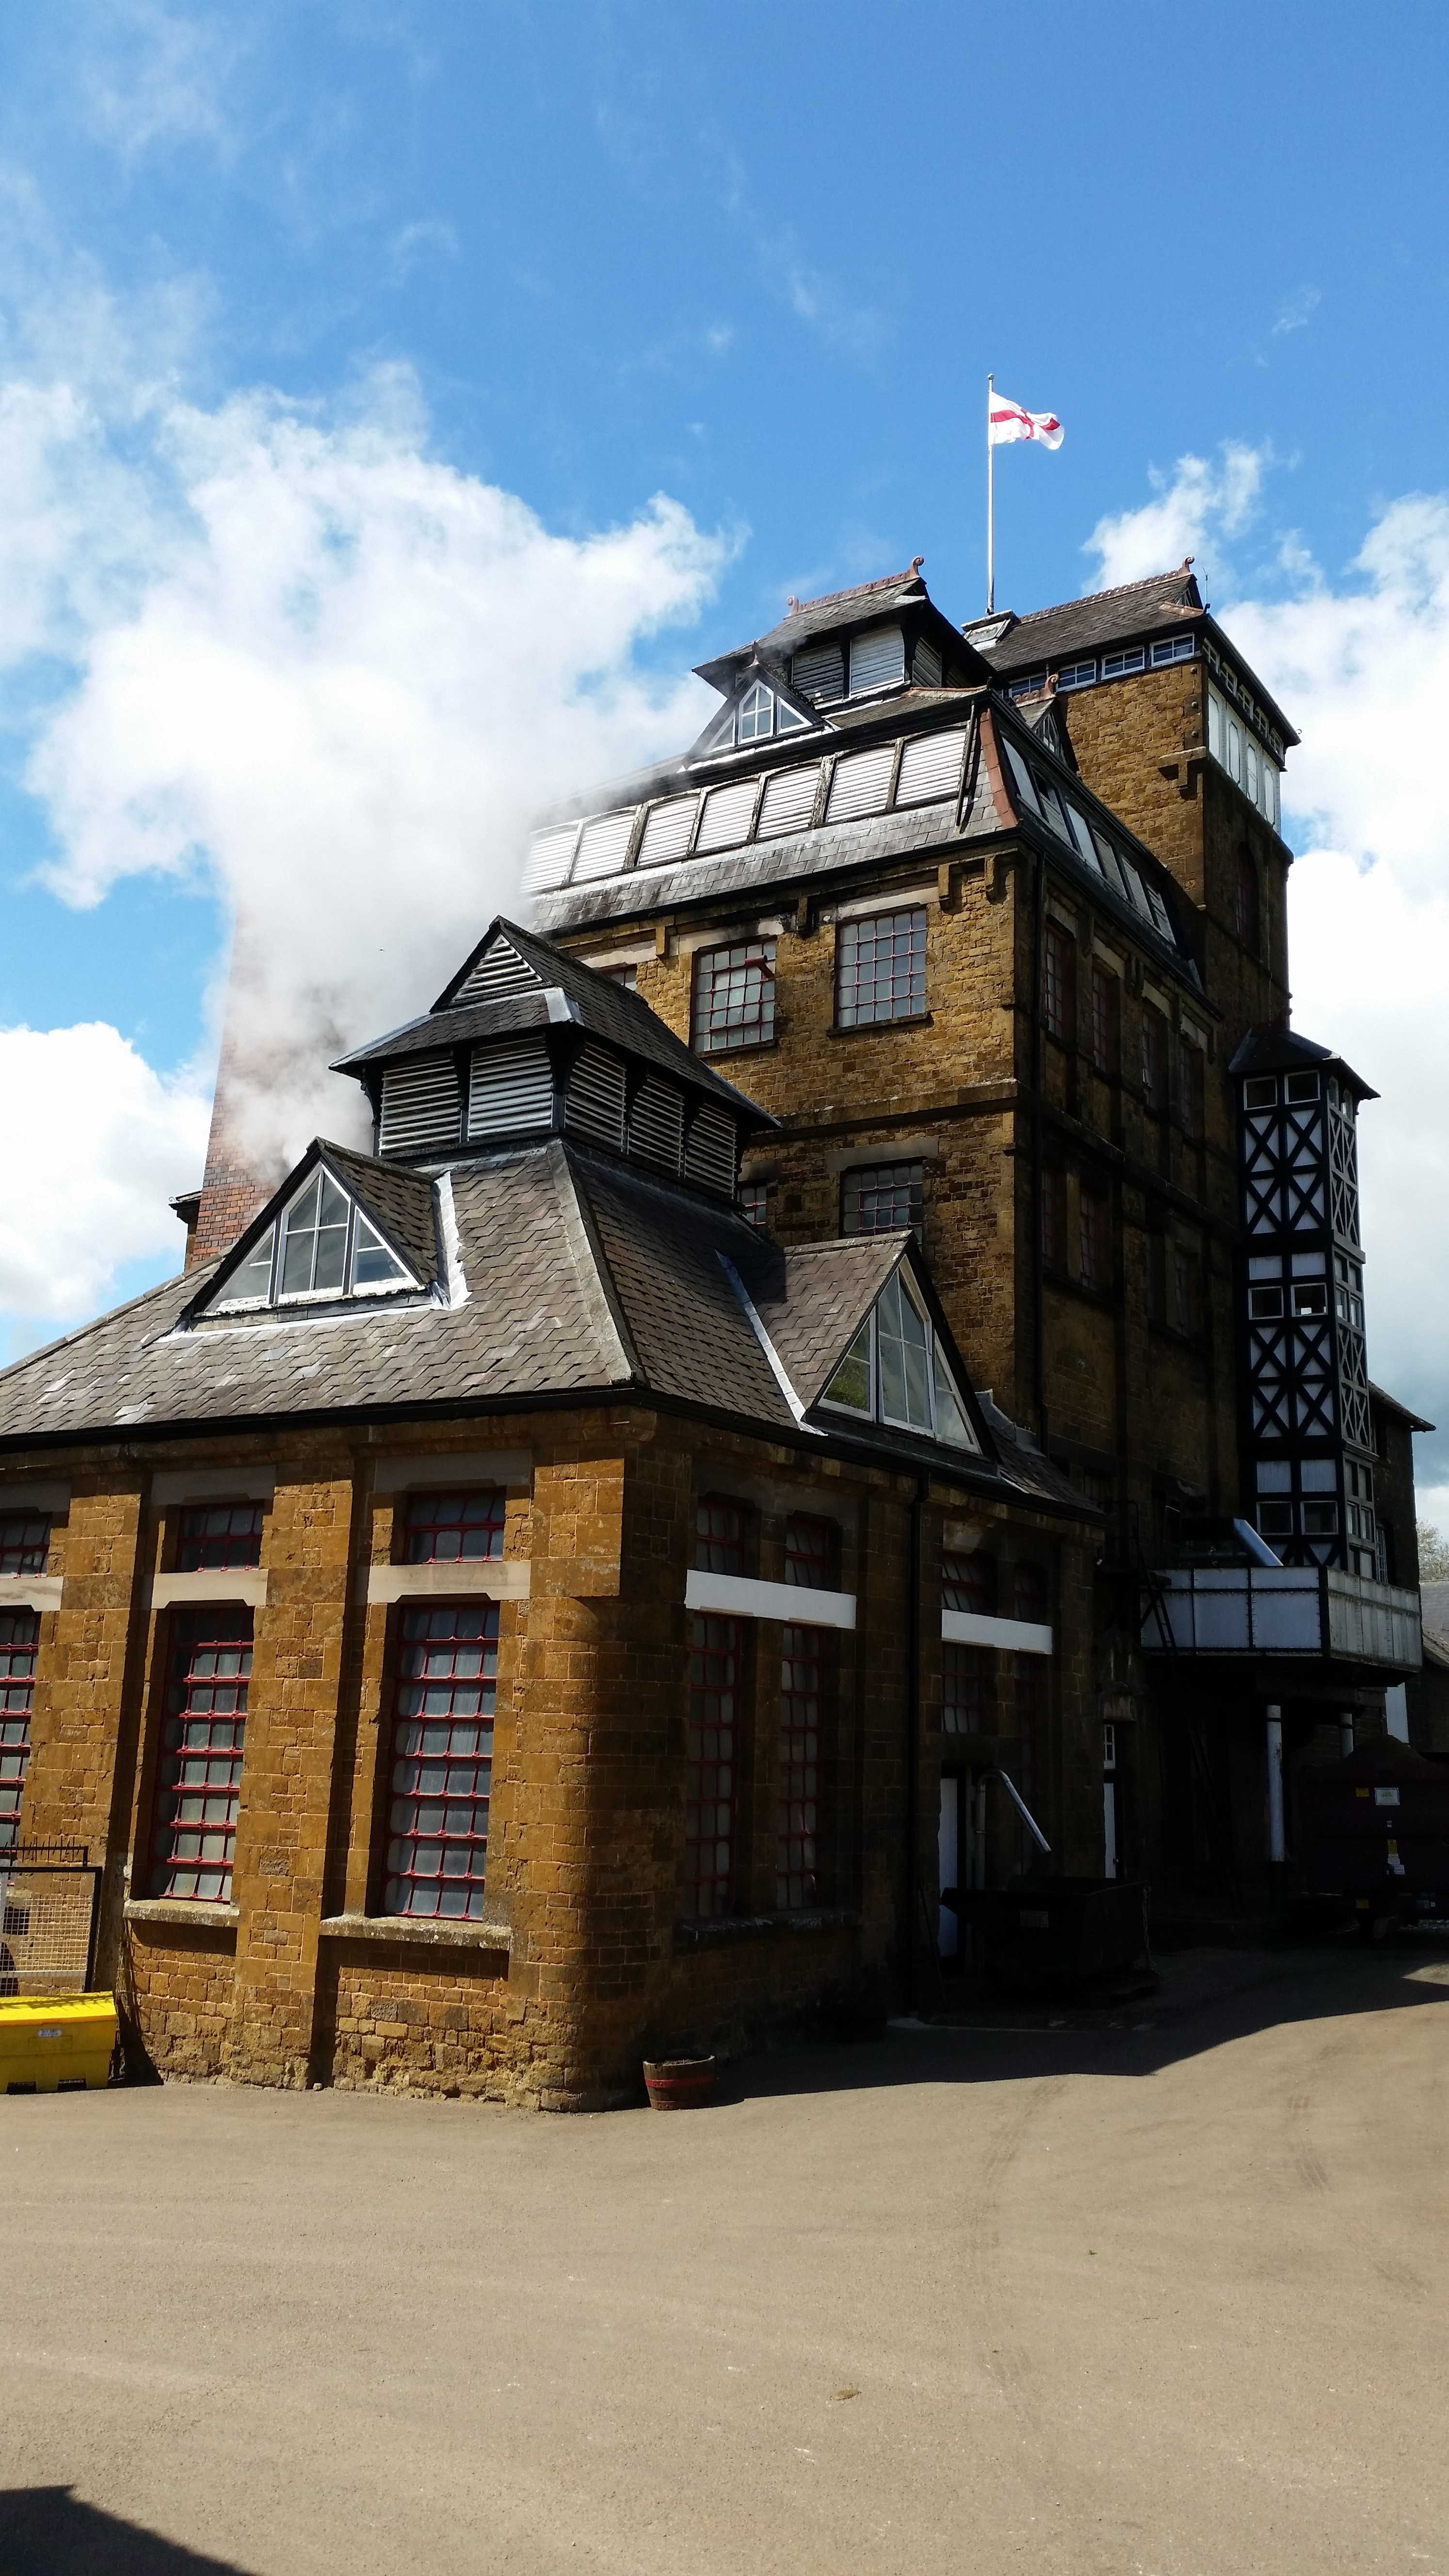 Hook Norton Brewery, Oxfordshire, England